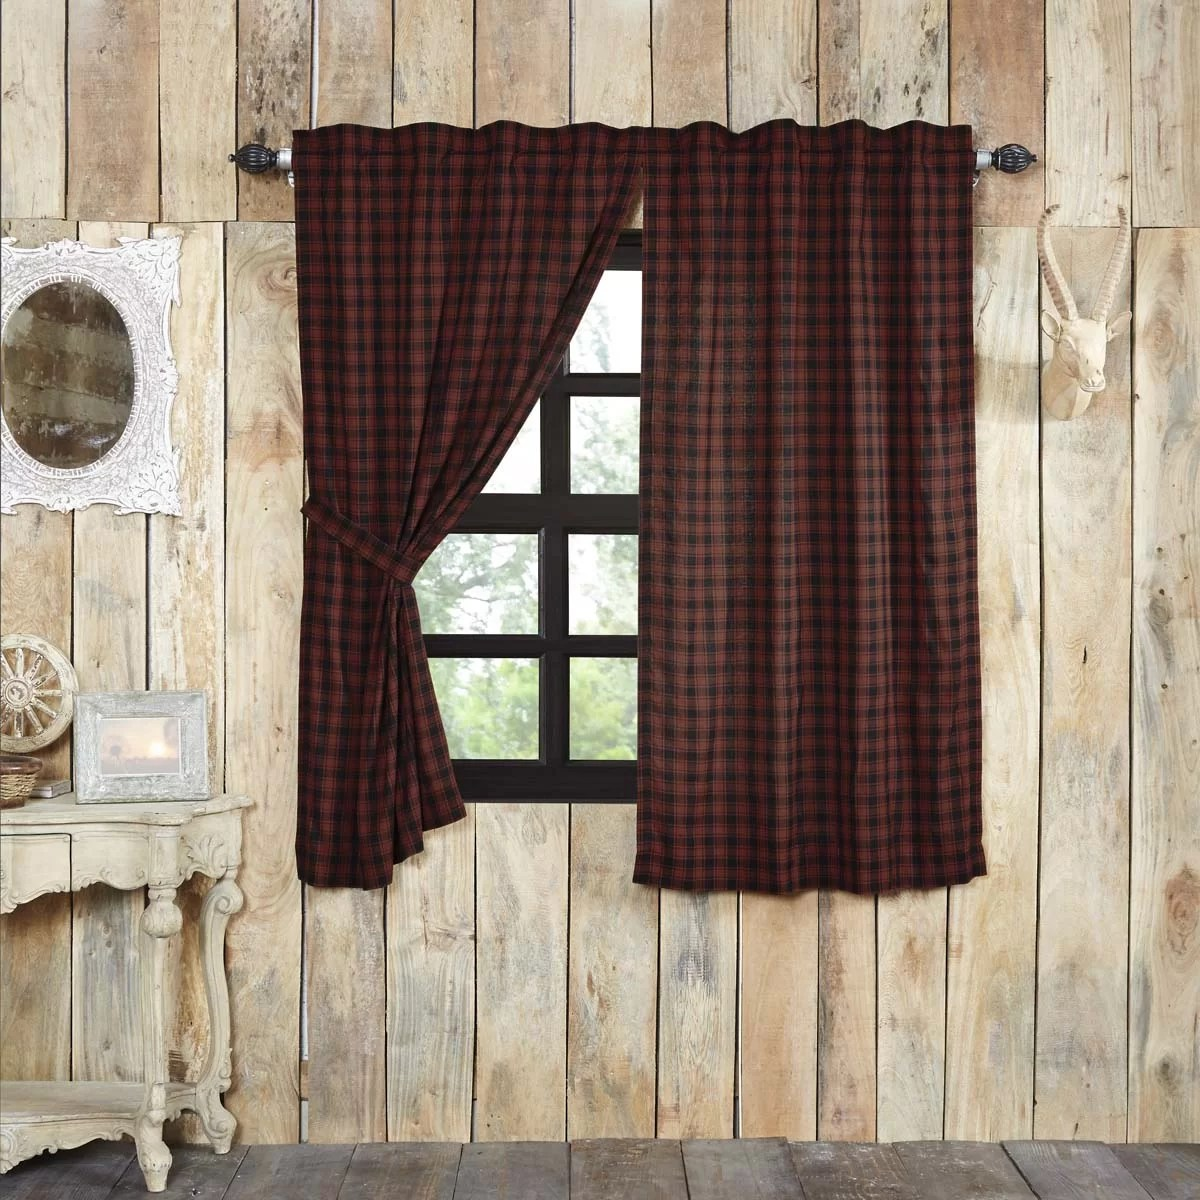 How To Make Lined Curtain Panels Dorval Lined Room Darkening Rod Pocket Curtain Panels